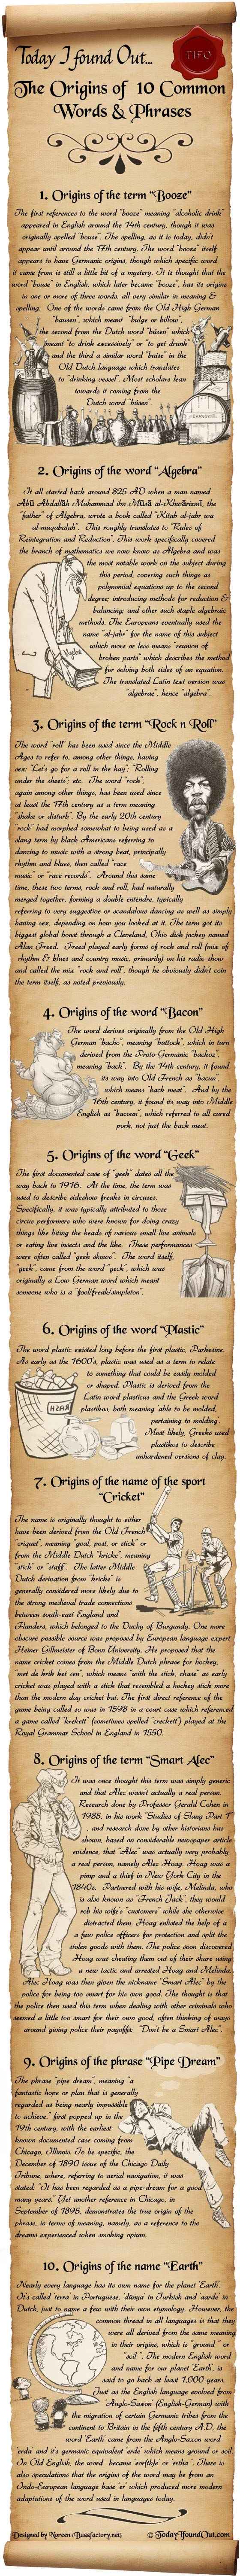 The Origins of 10 Common Words and Phrases